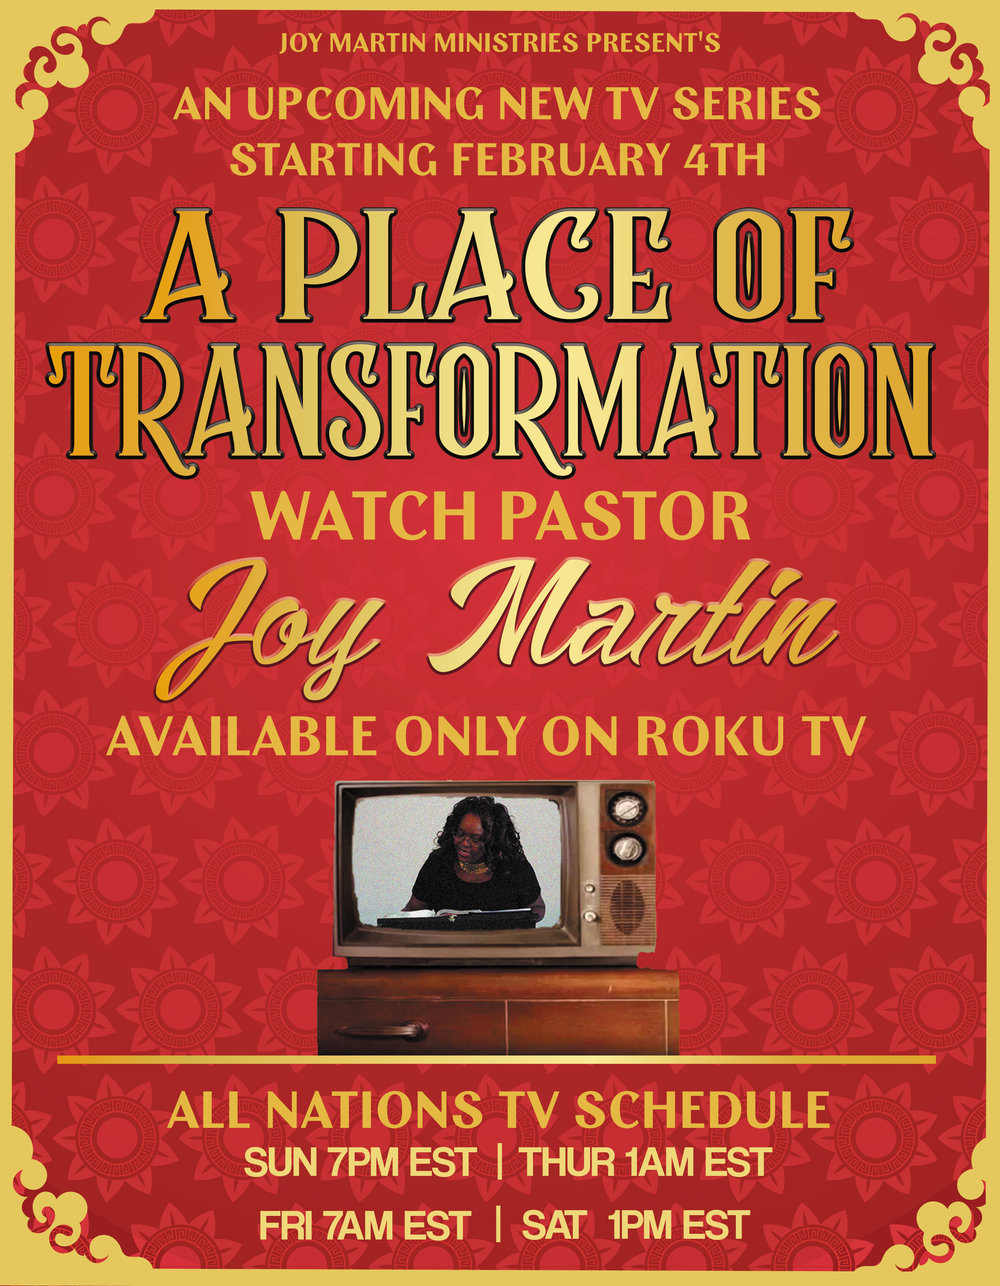 If you do not have ROKU..no worries...you can download the app All Nations TV or go to  allnationstv.com  and watch the live broadcast.